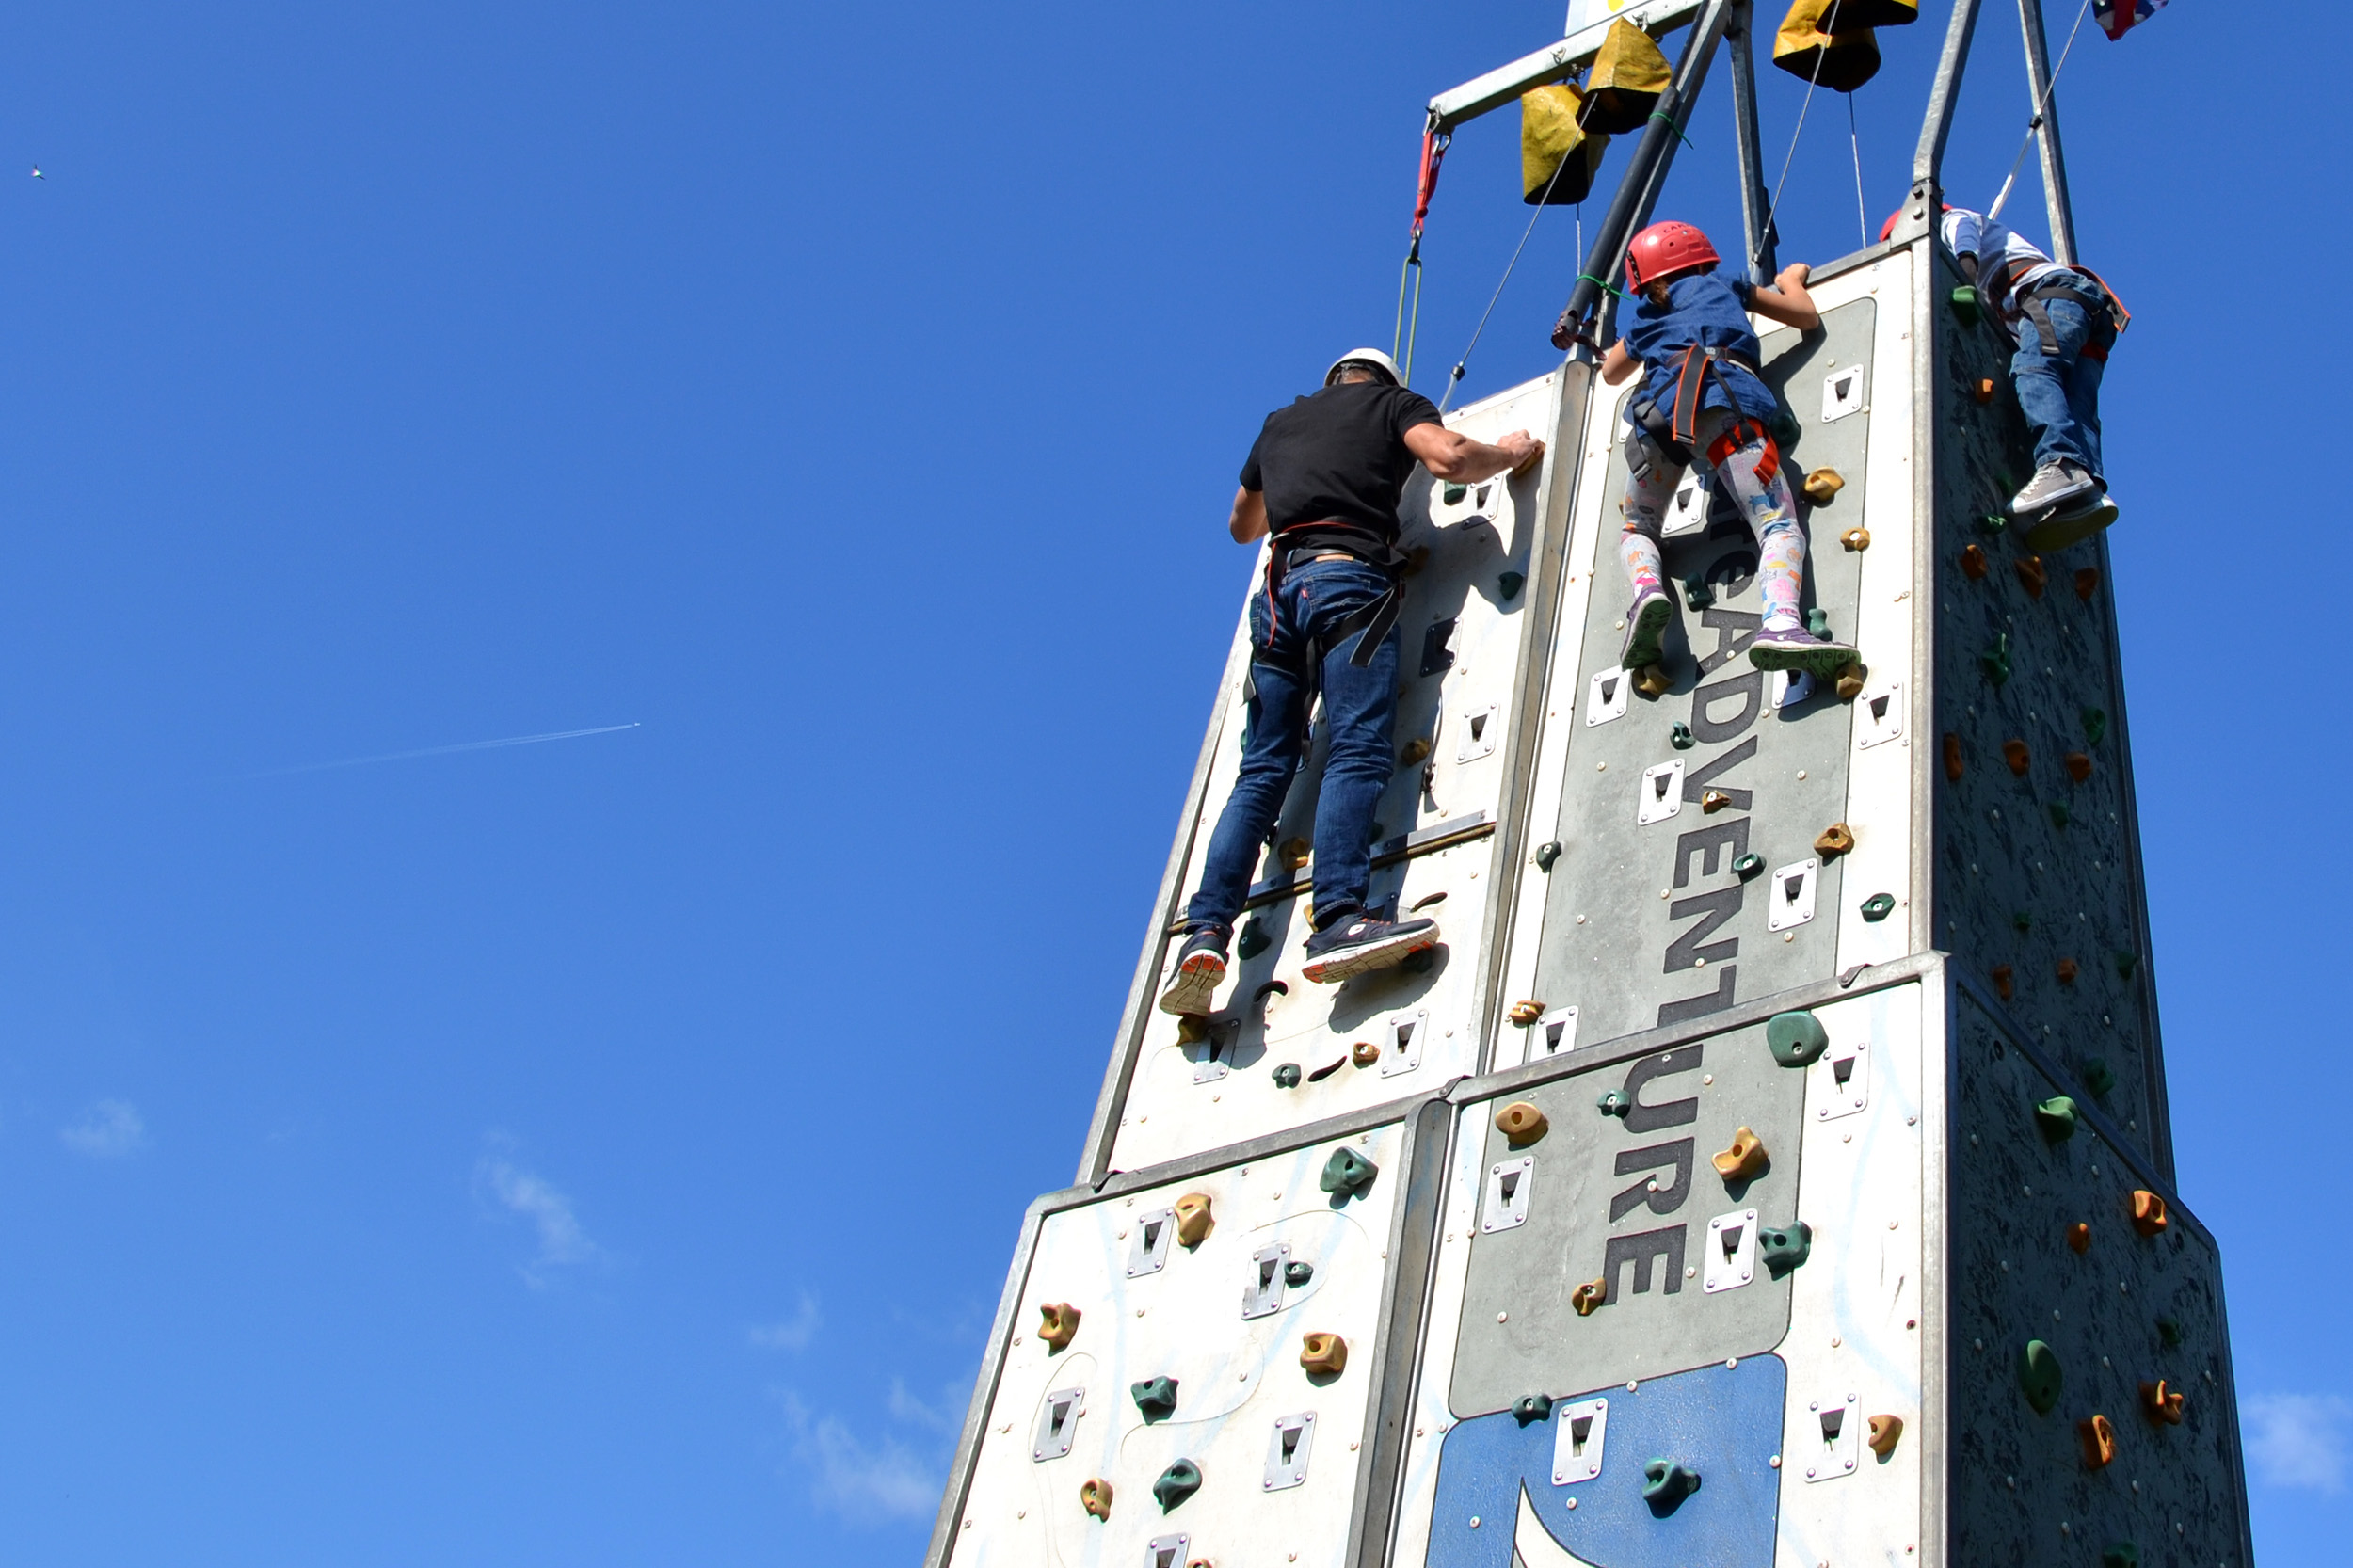 Family climbing, Action, Practicing, Height, Helmet, HQ Photo